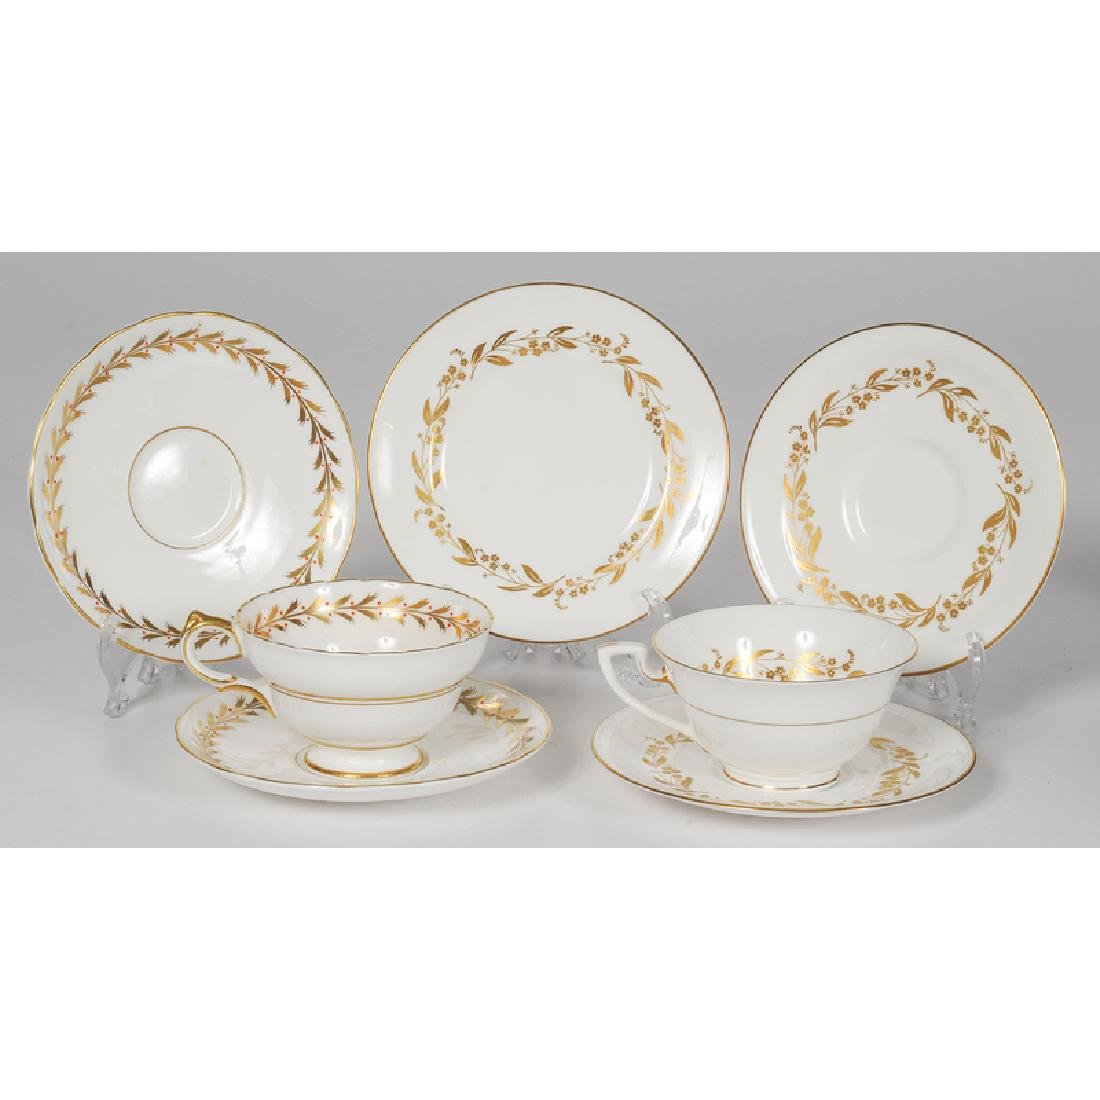 Worcester and Copeland Porcelain Tea Sets - 2